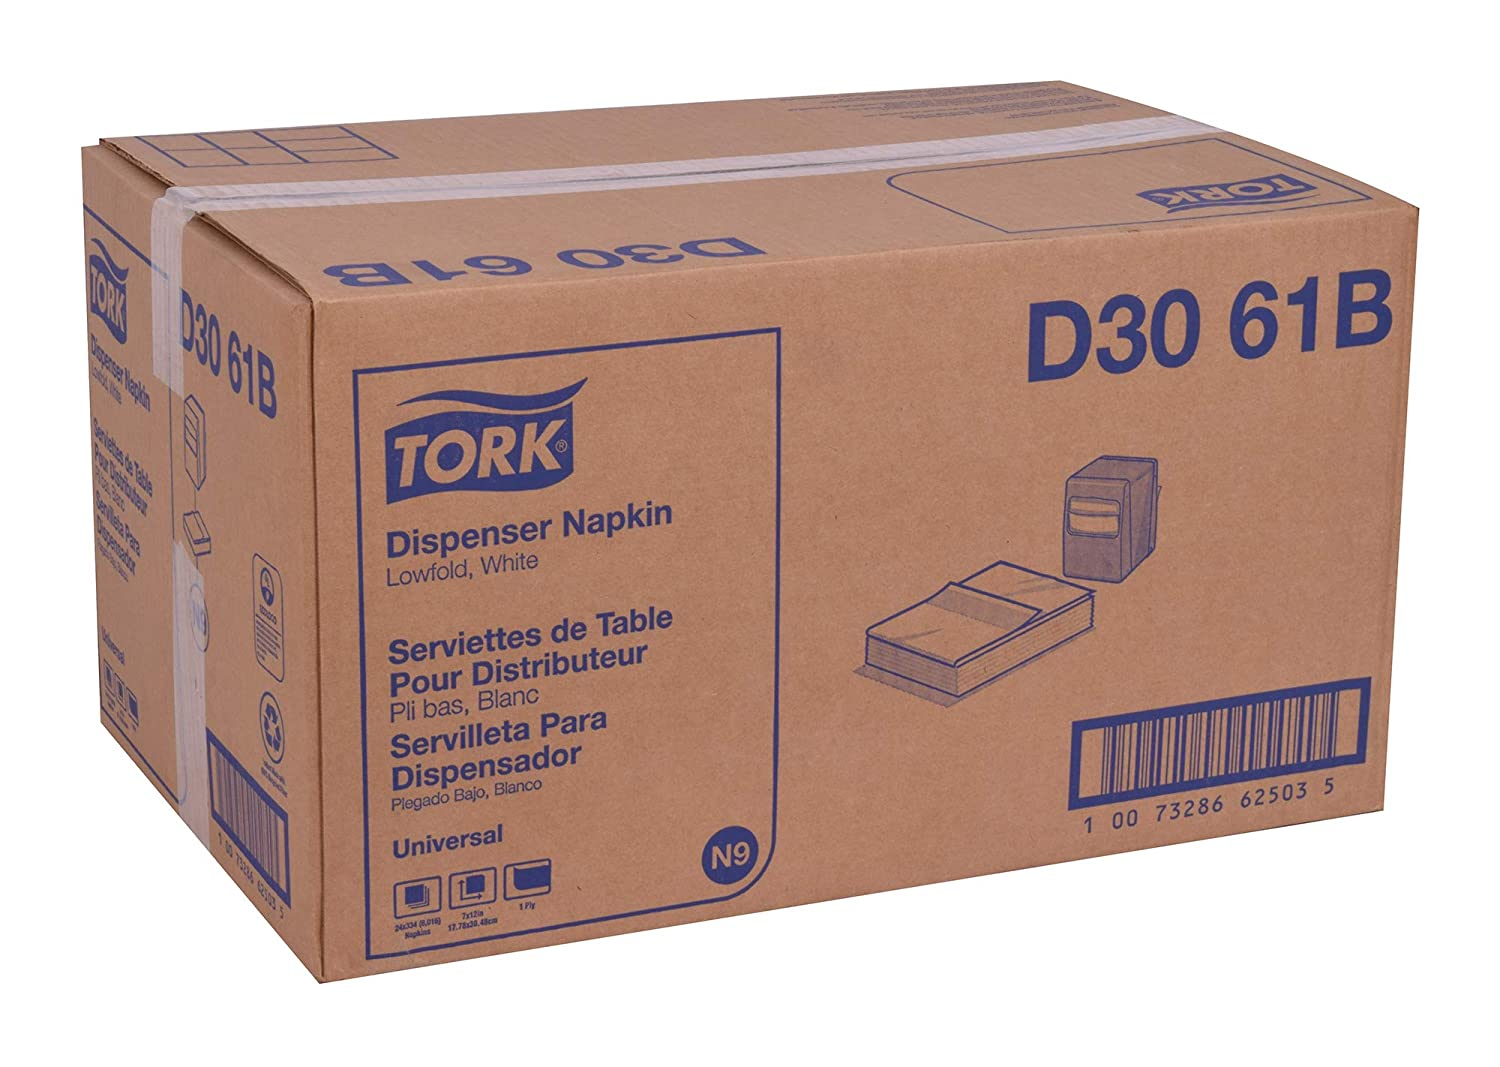 Amazon.com: Tork Universal D3061B Lowfold Dispenser Napkin, Overall Embossed, 1-Ply, 12